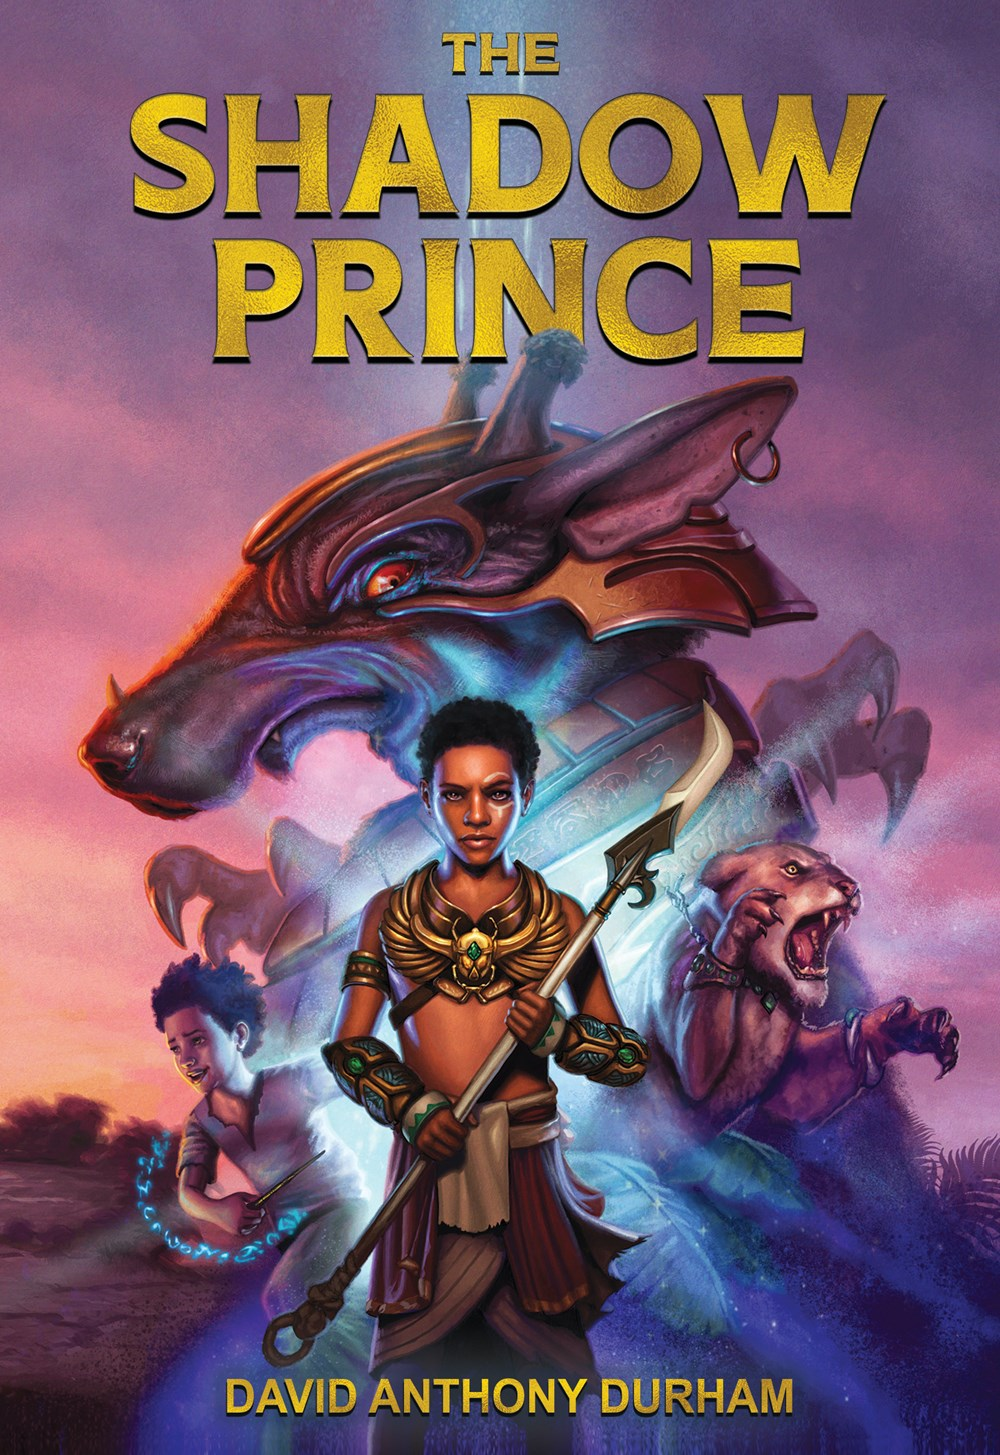 The Shadow Prince by David Anthony Durham